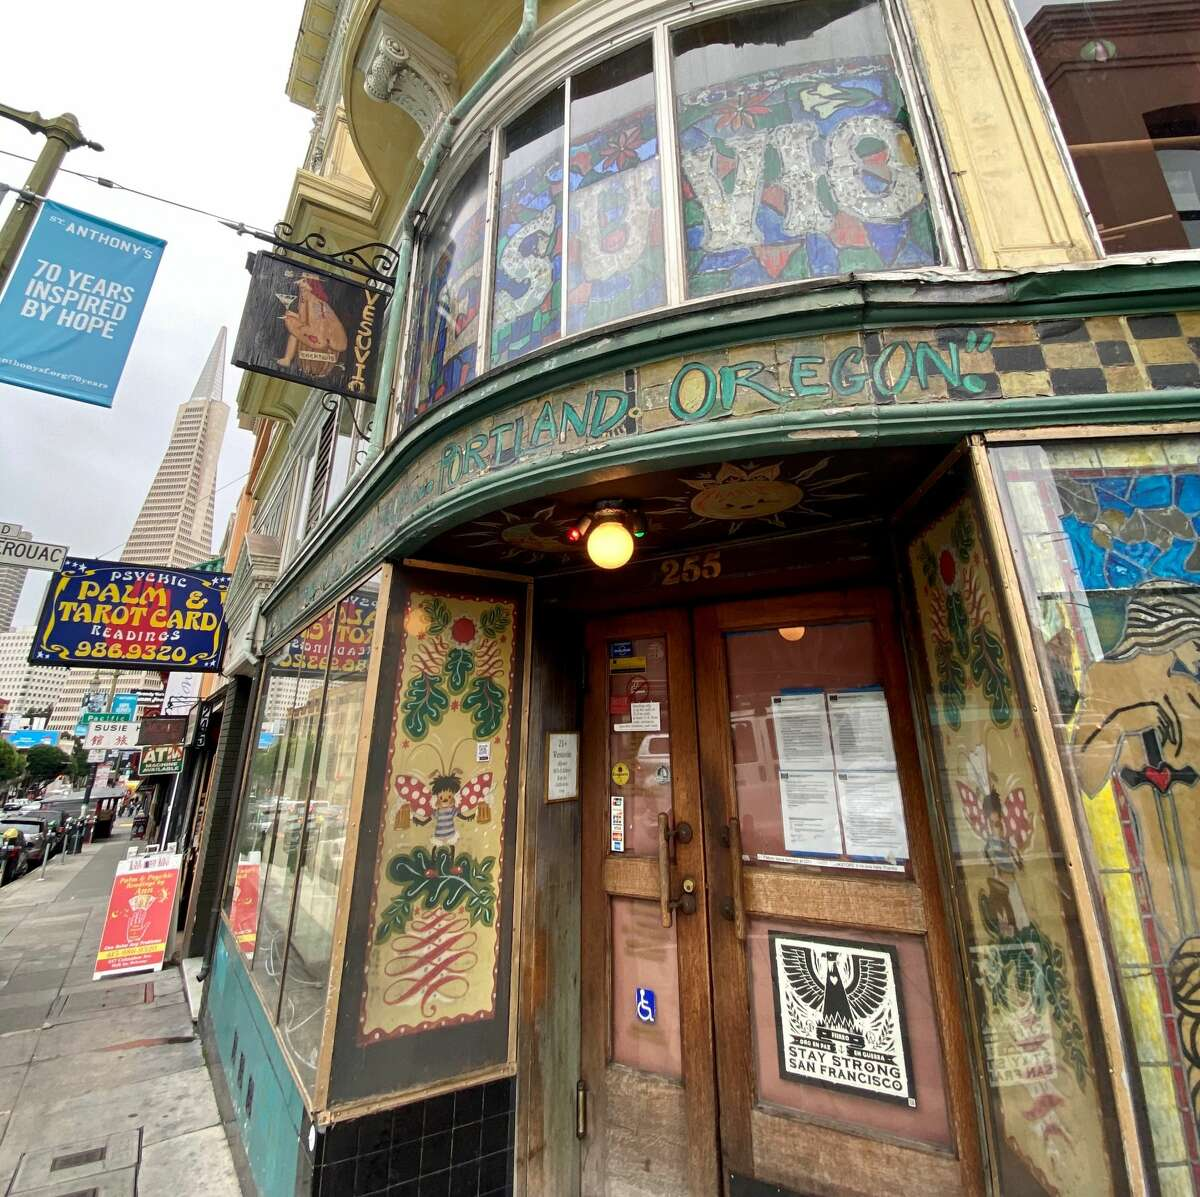 Vesuvio Cafe is requiring proof of vaccination at their establishment, as of Tuesday.